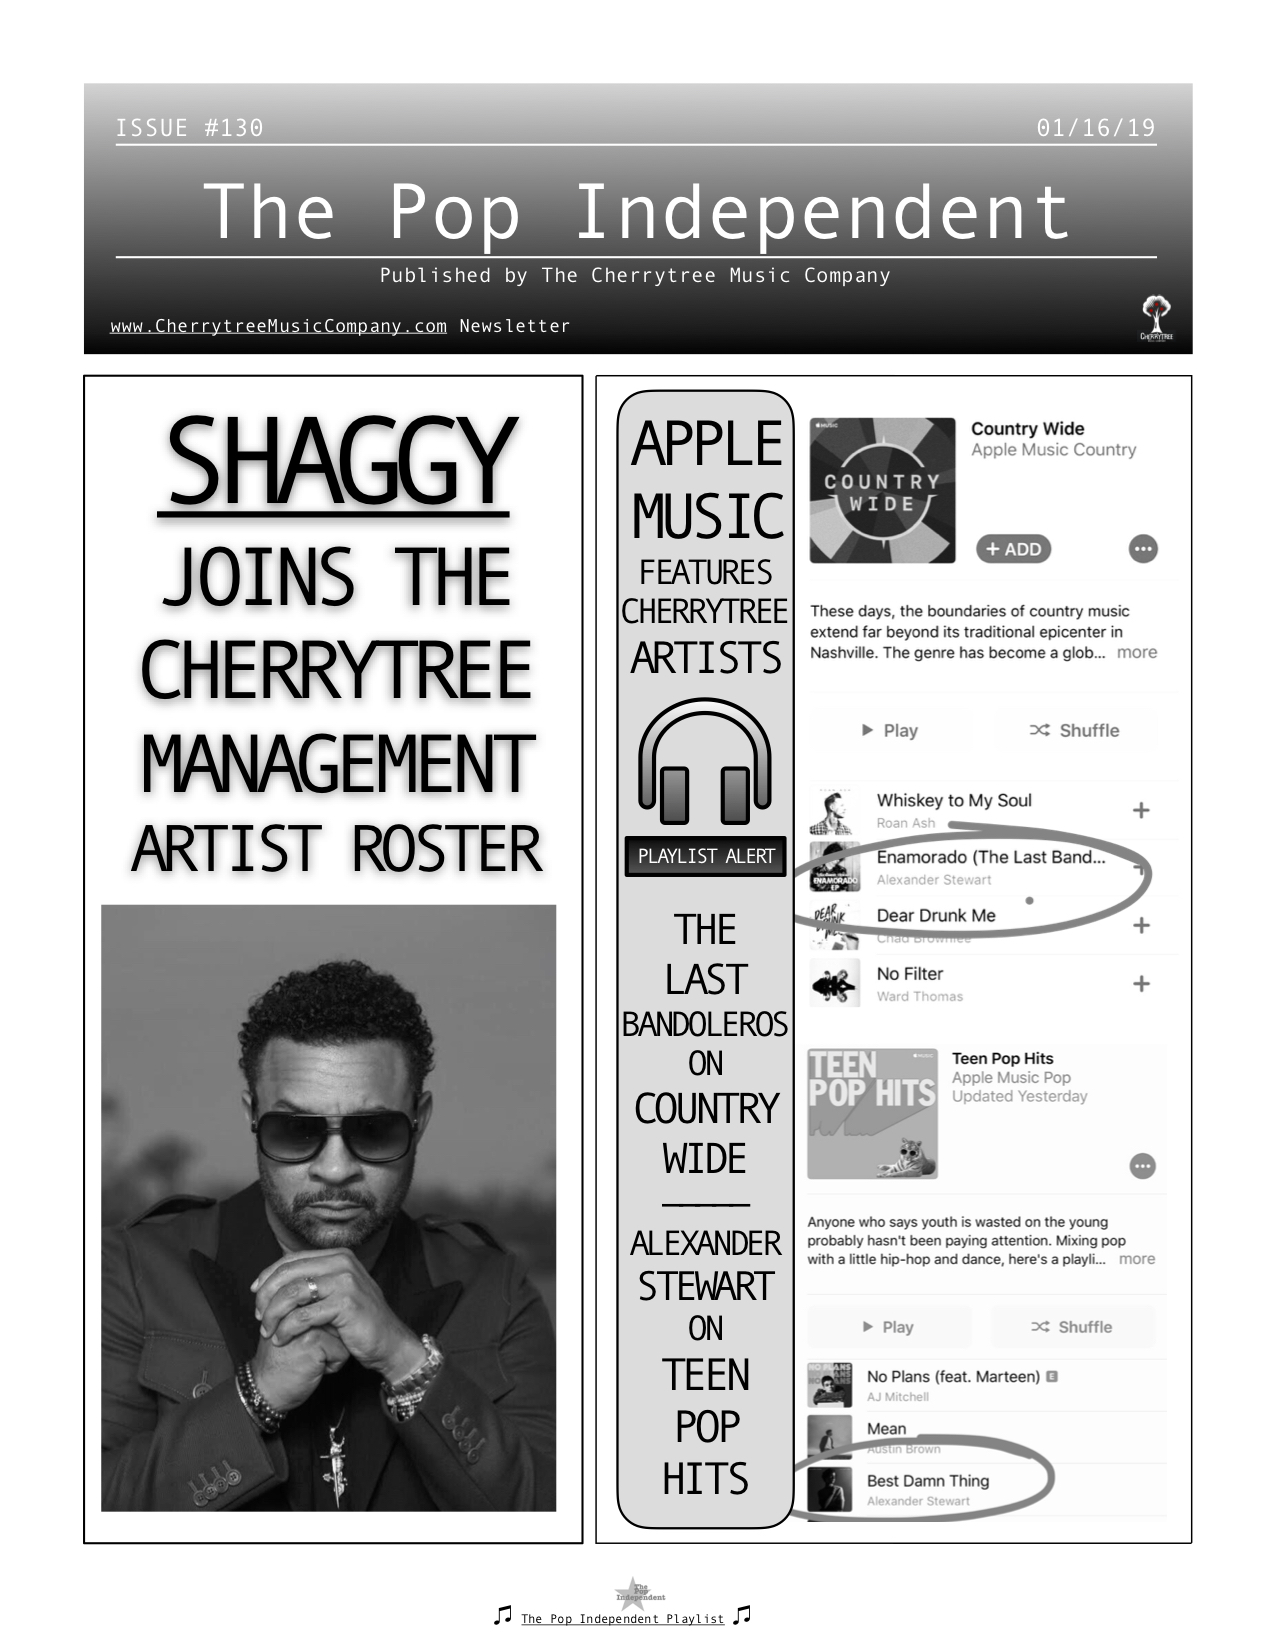 The Pop Independent, issue 130